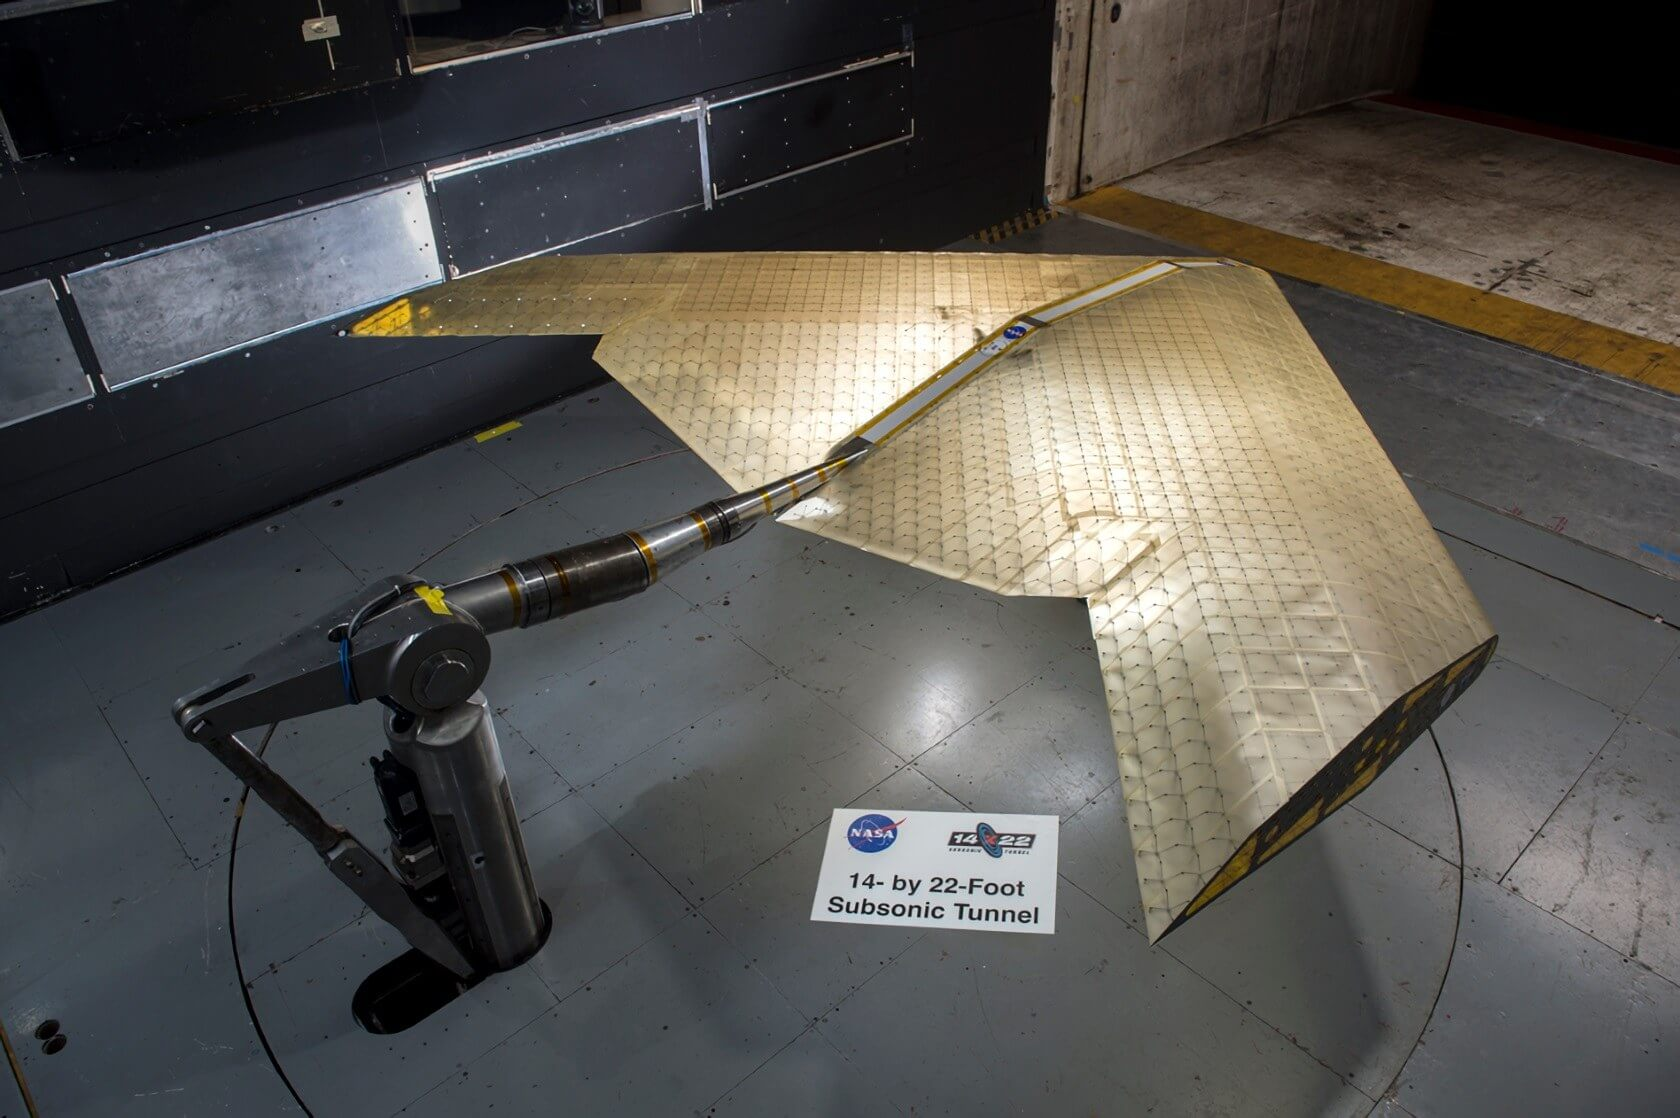 NASA, MIT engineers develop aircraft wing that can change